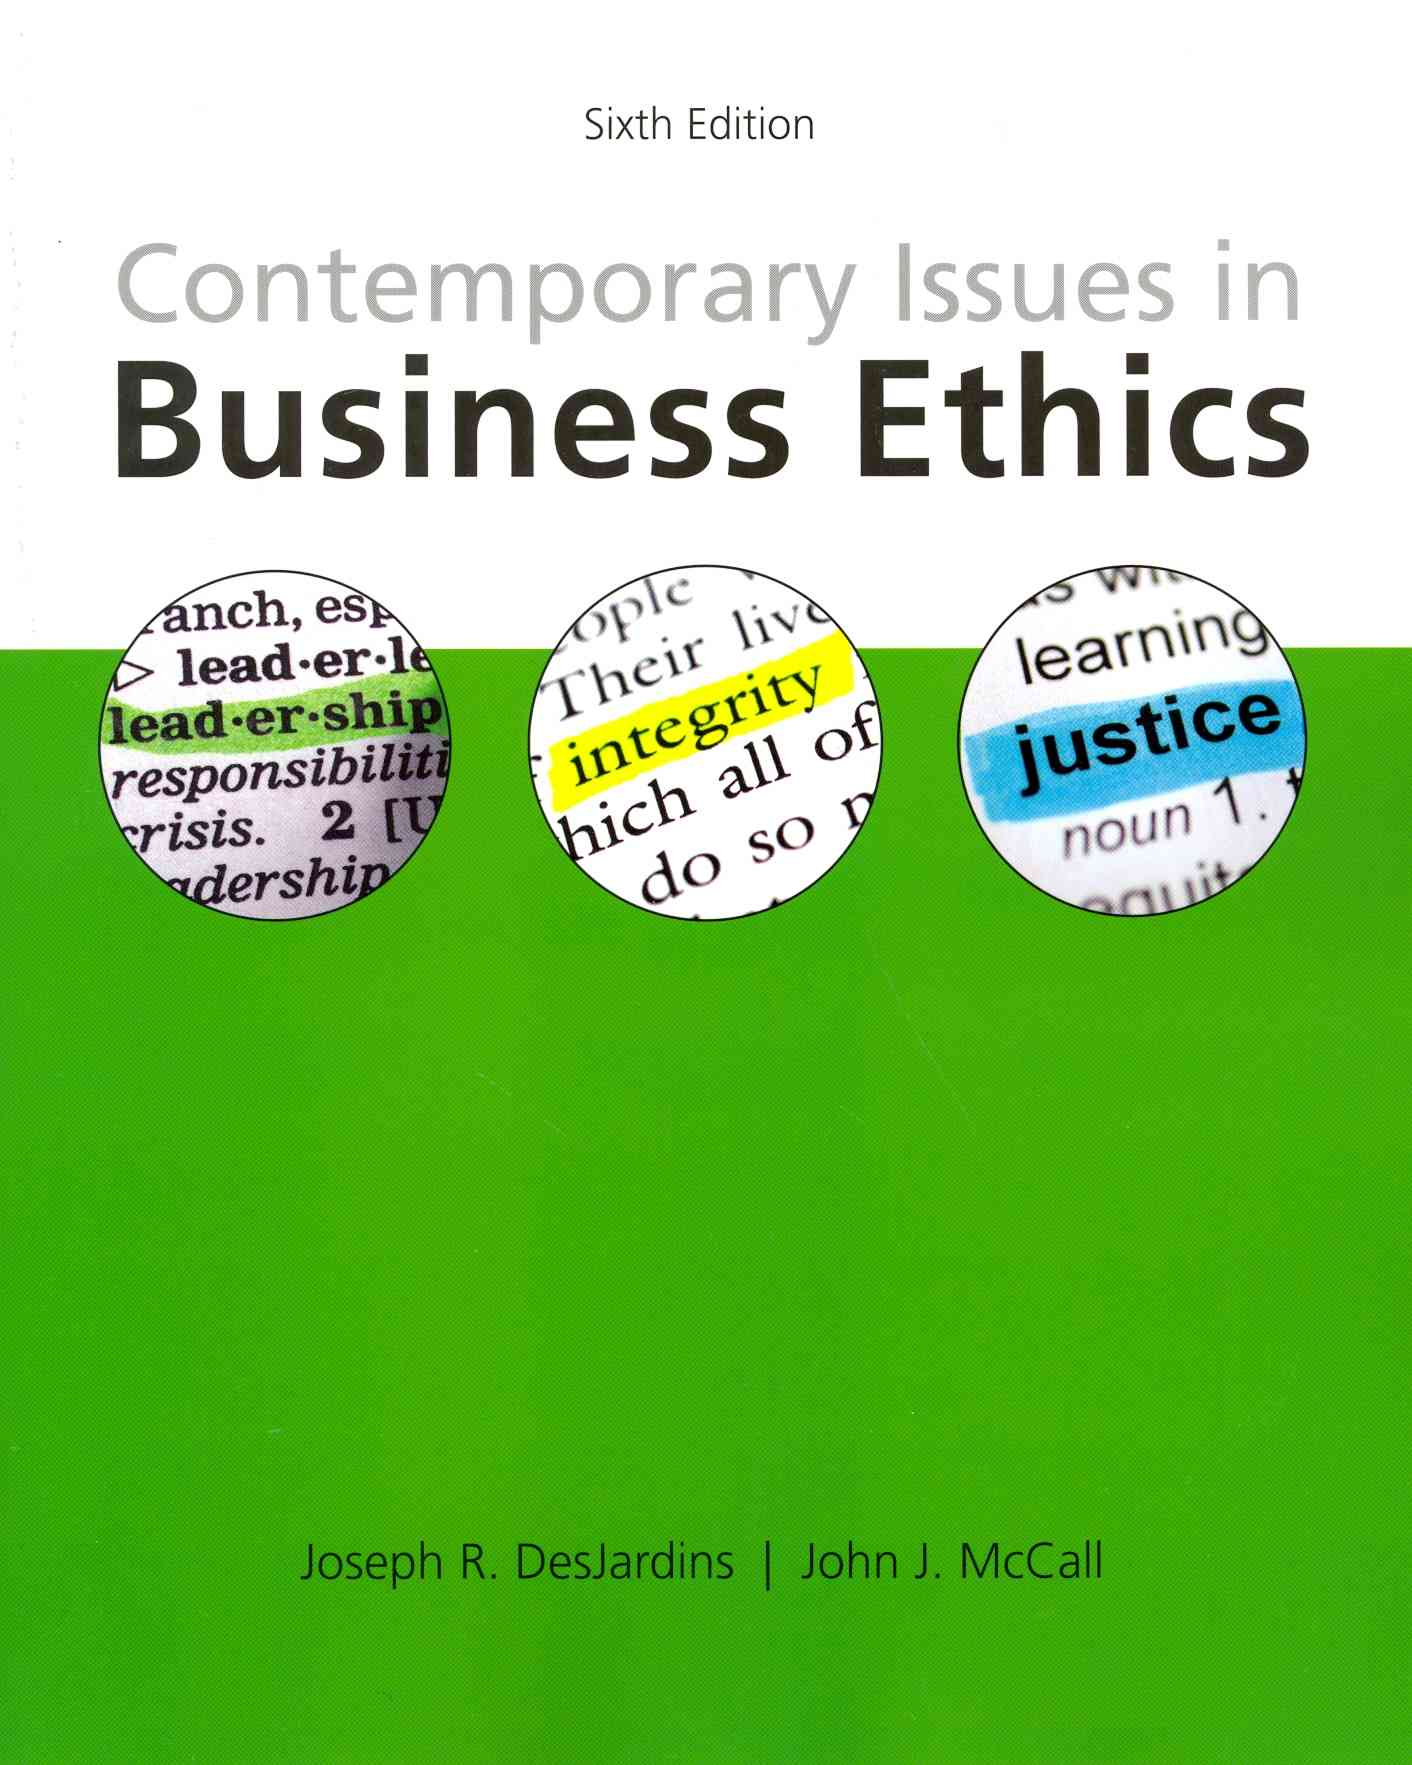 Contemporary Issues in Business Ethics By Desjardins, Joseph R./ McCall, John J.